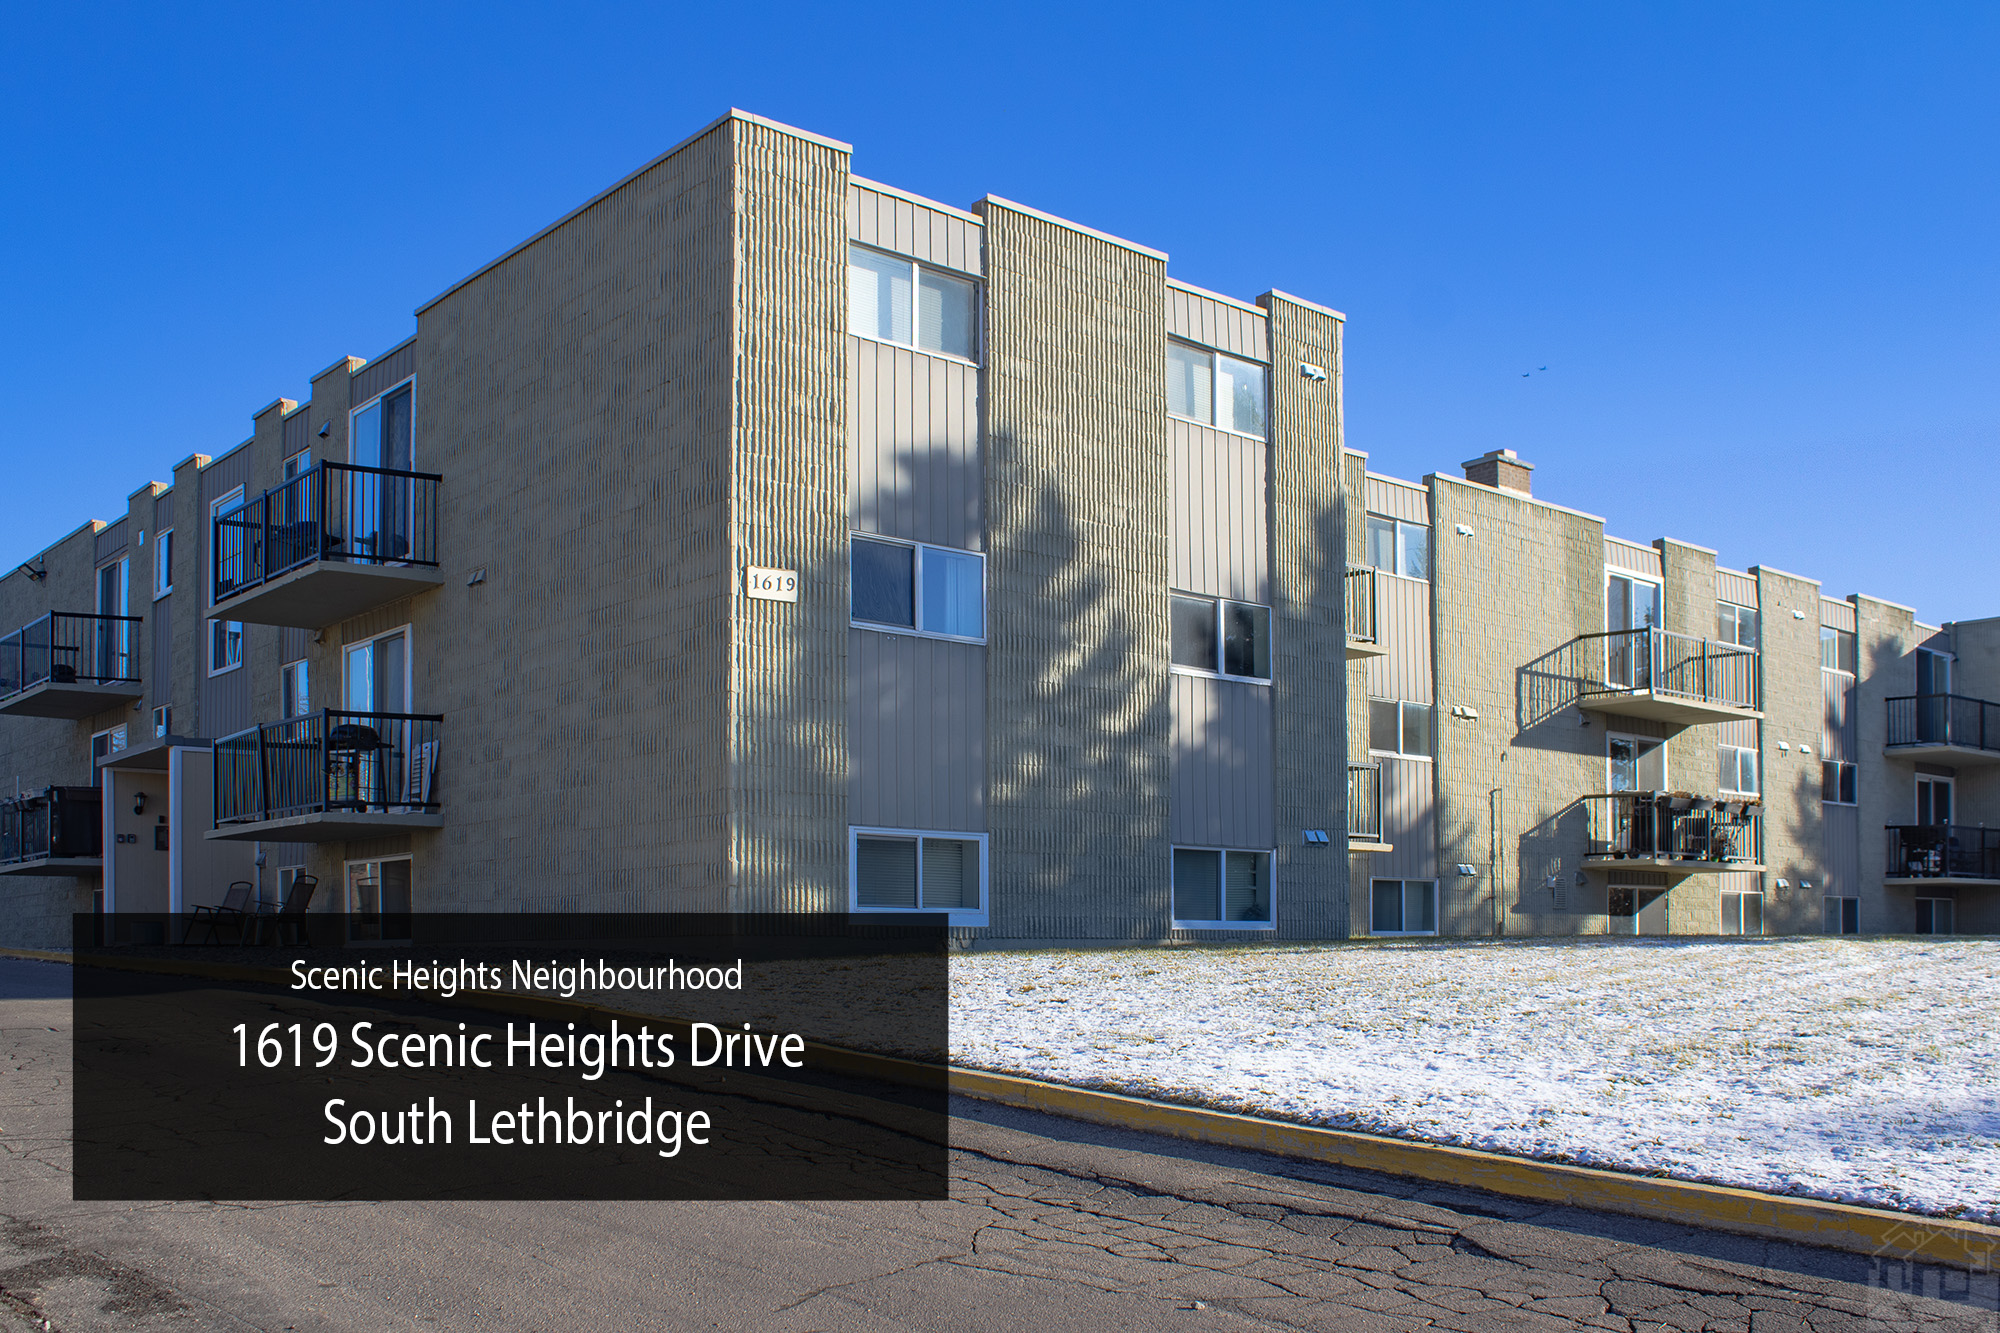 1619  Scenic Heights Drive South Lethbridge (Unit 8) Cover image